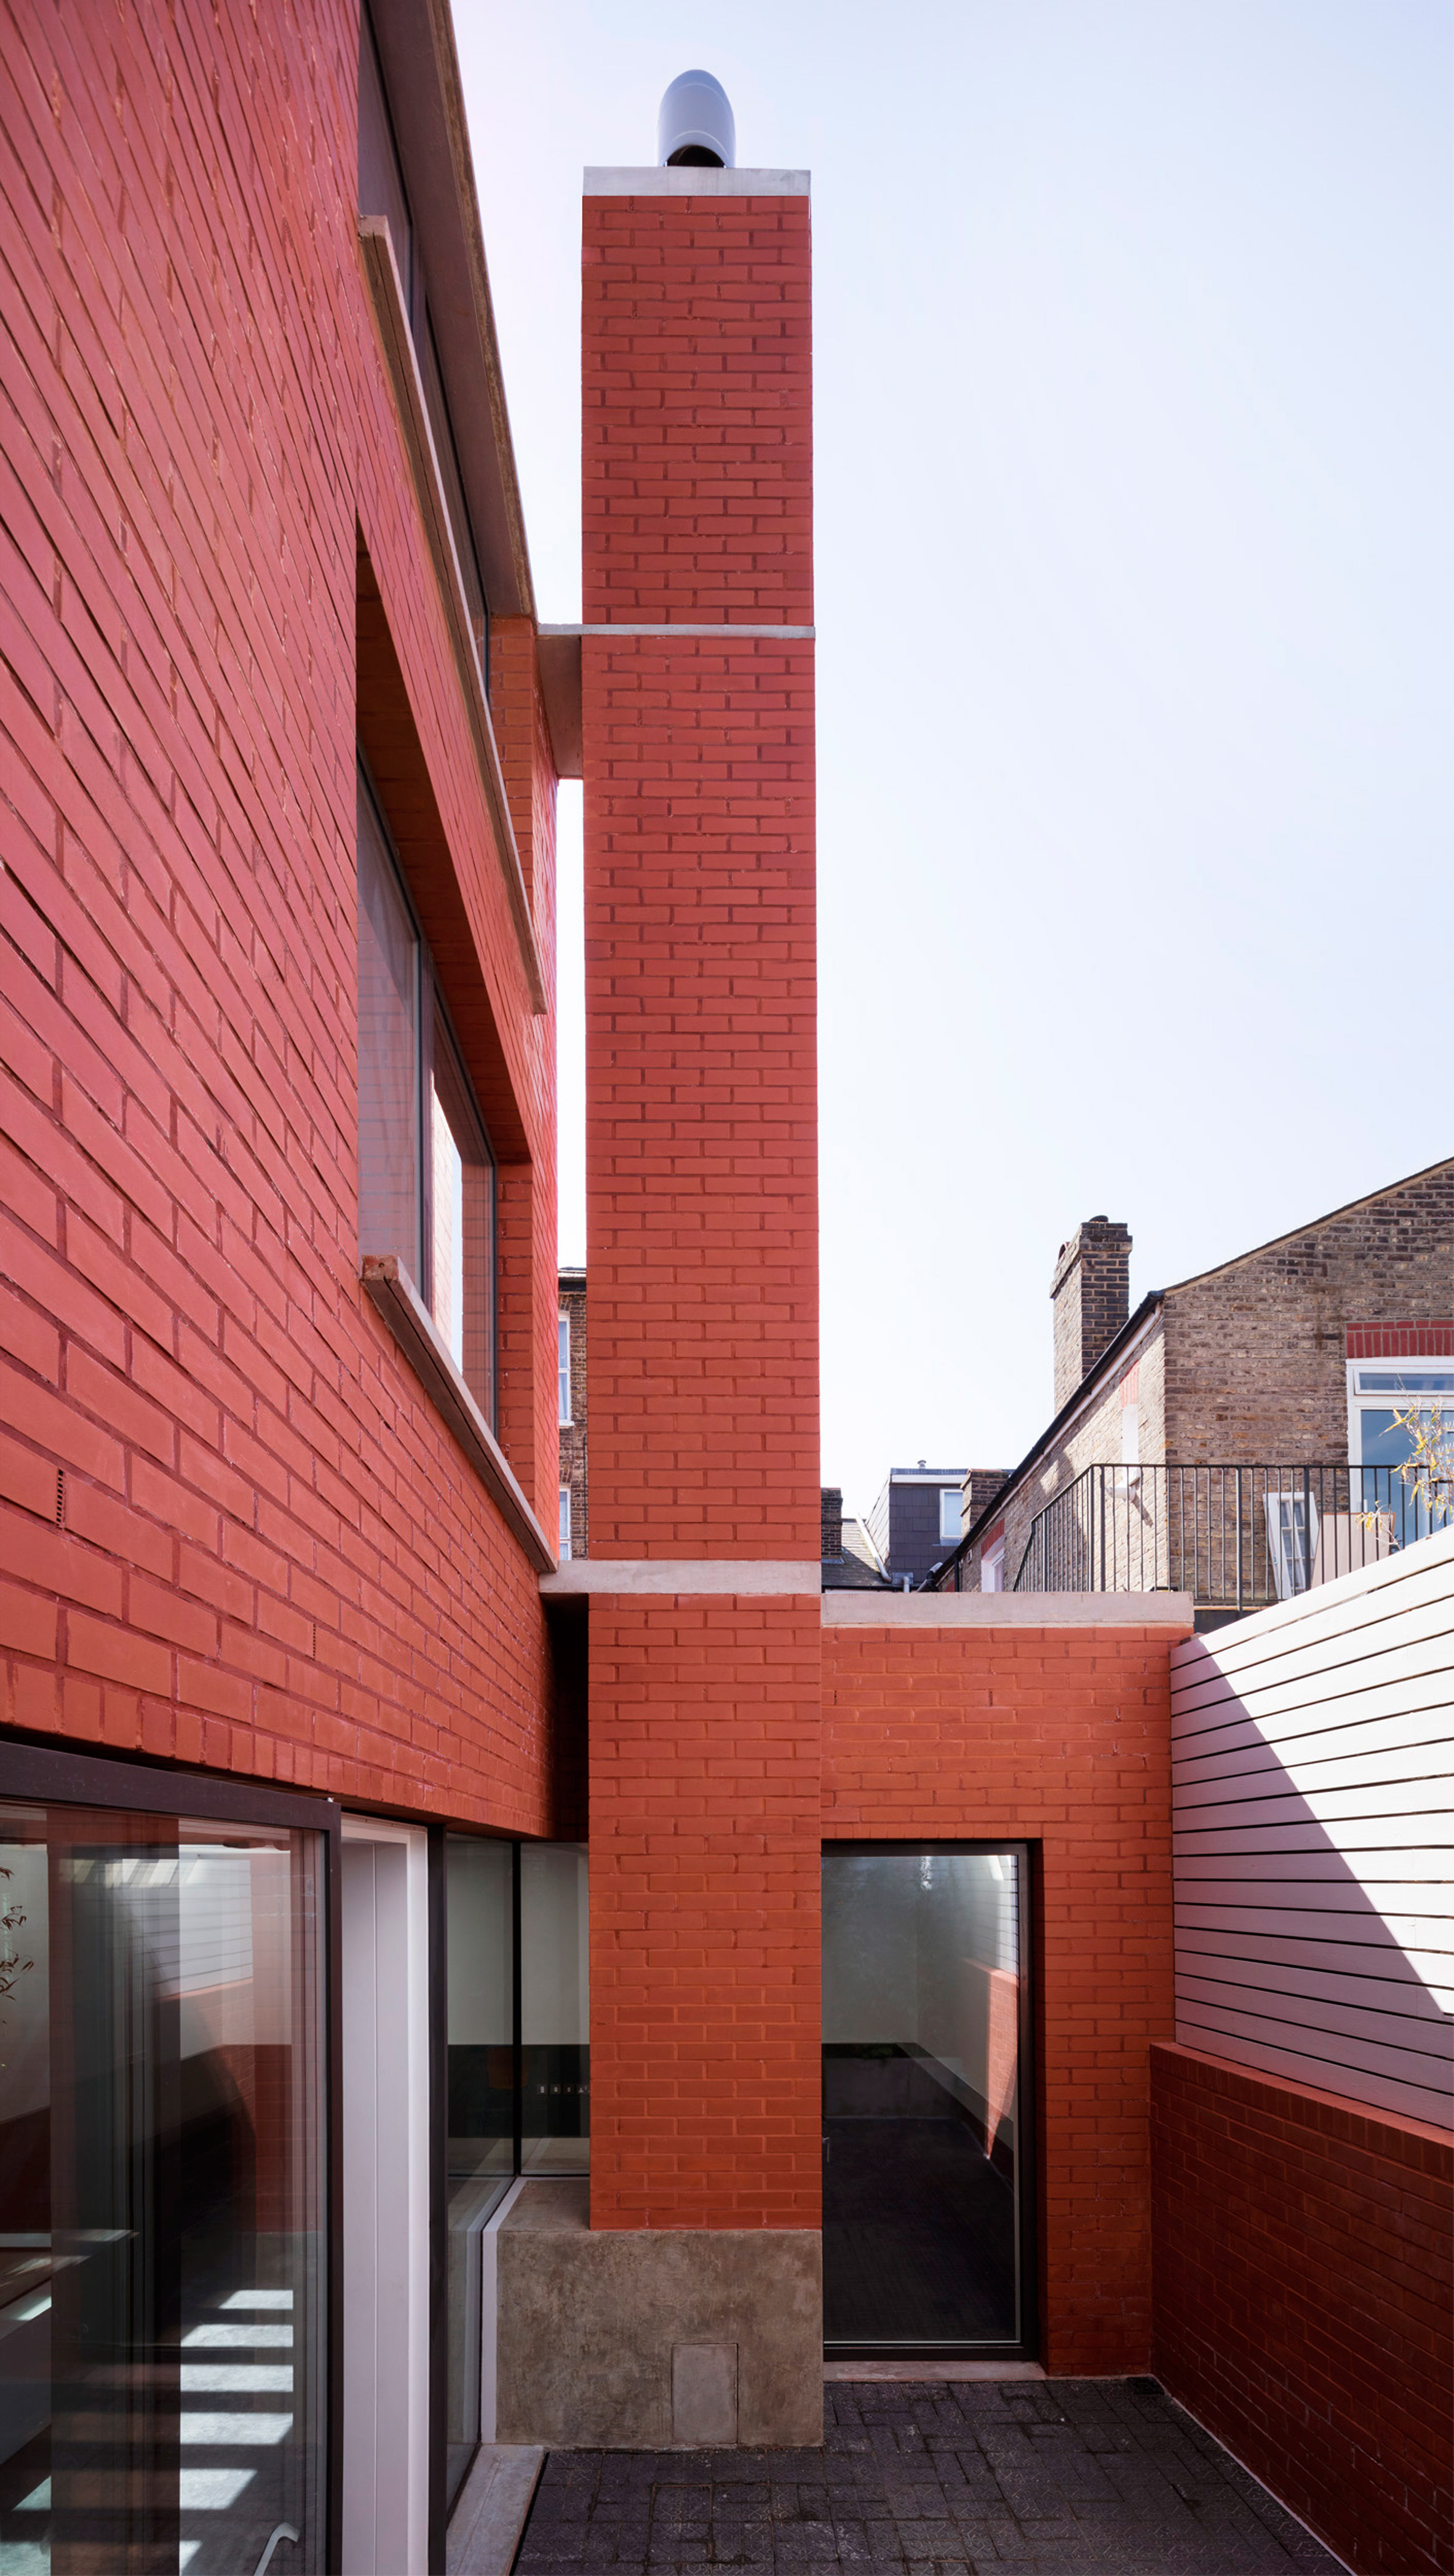 31/44 Architects complete Red House in East Dulwich, London